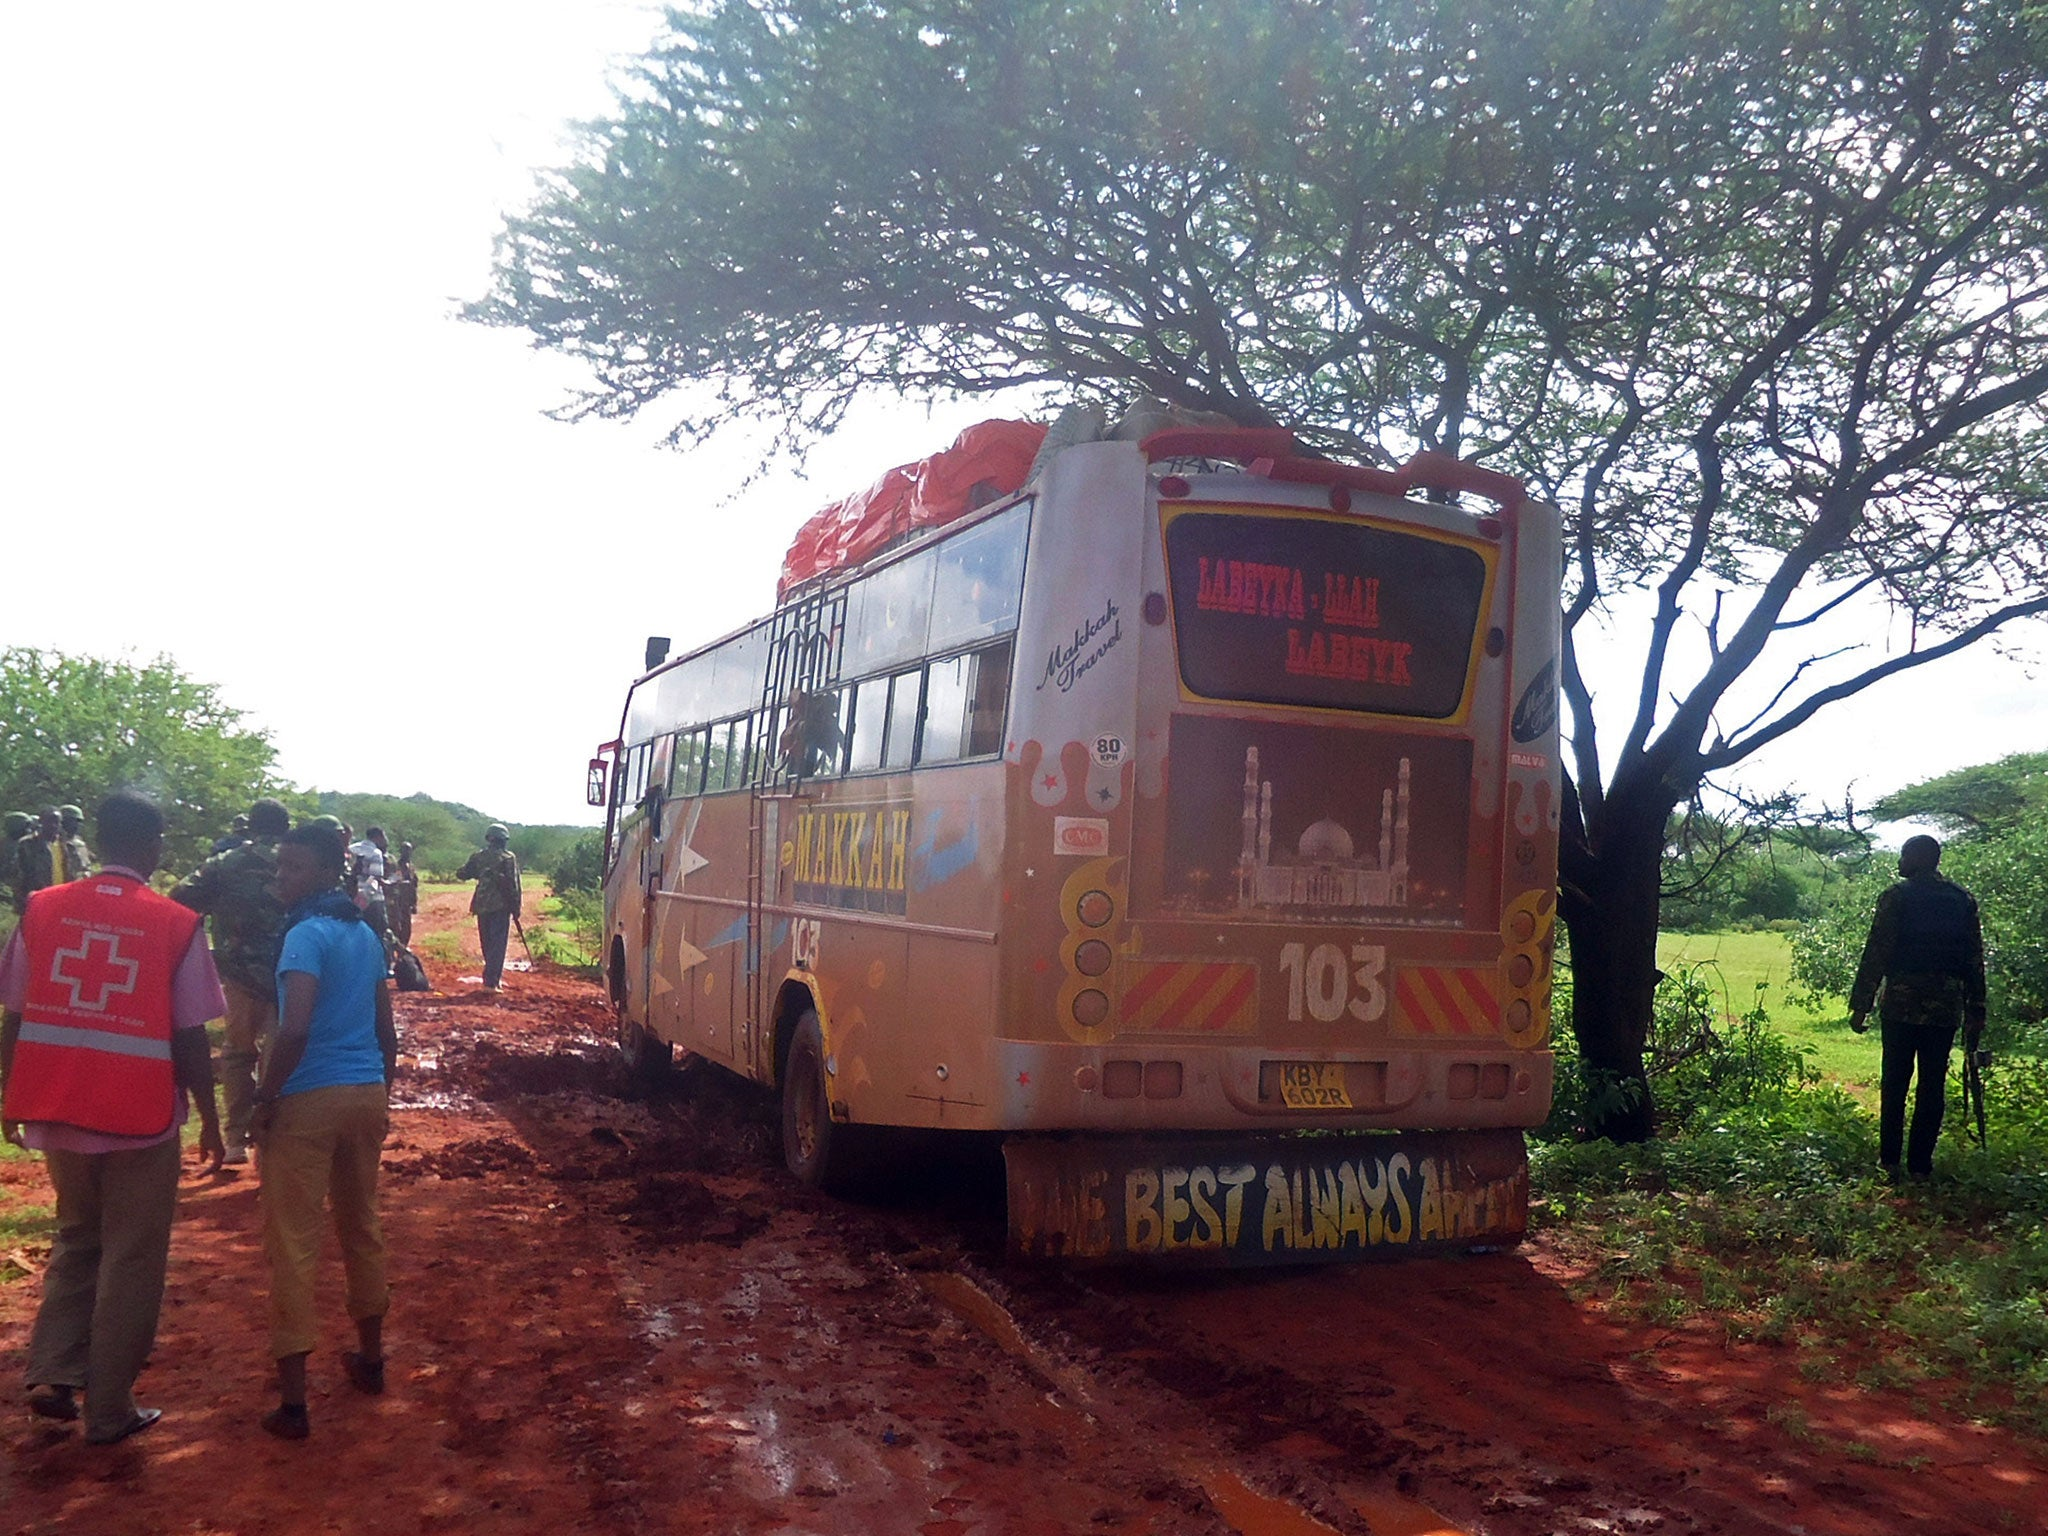 Muslim man dies after protecting Christian bus passengers from al-Shabaab terror attack in Kenya